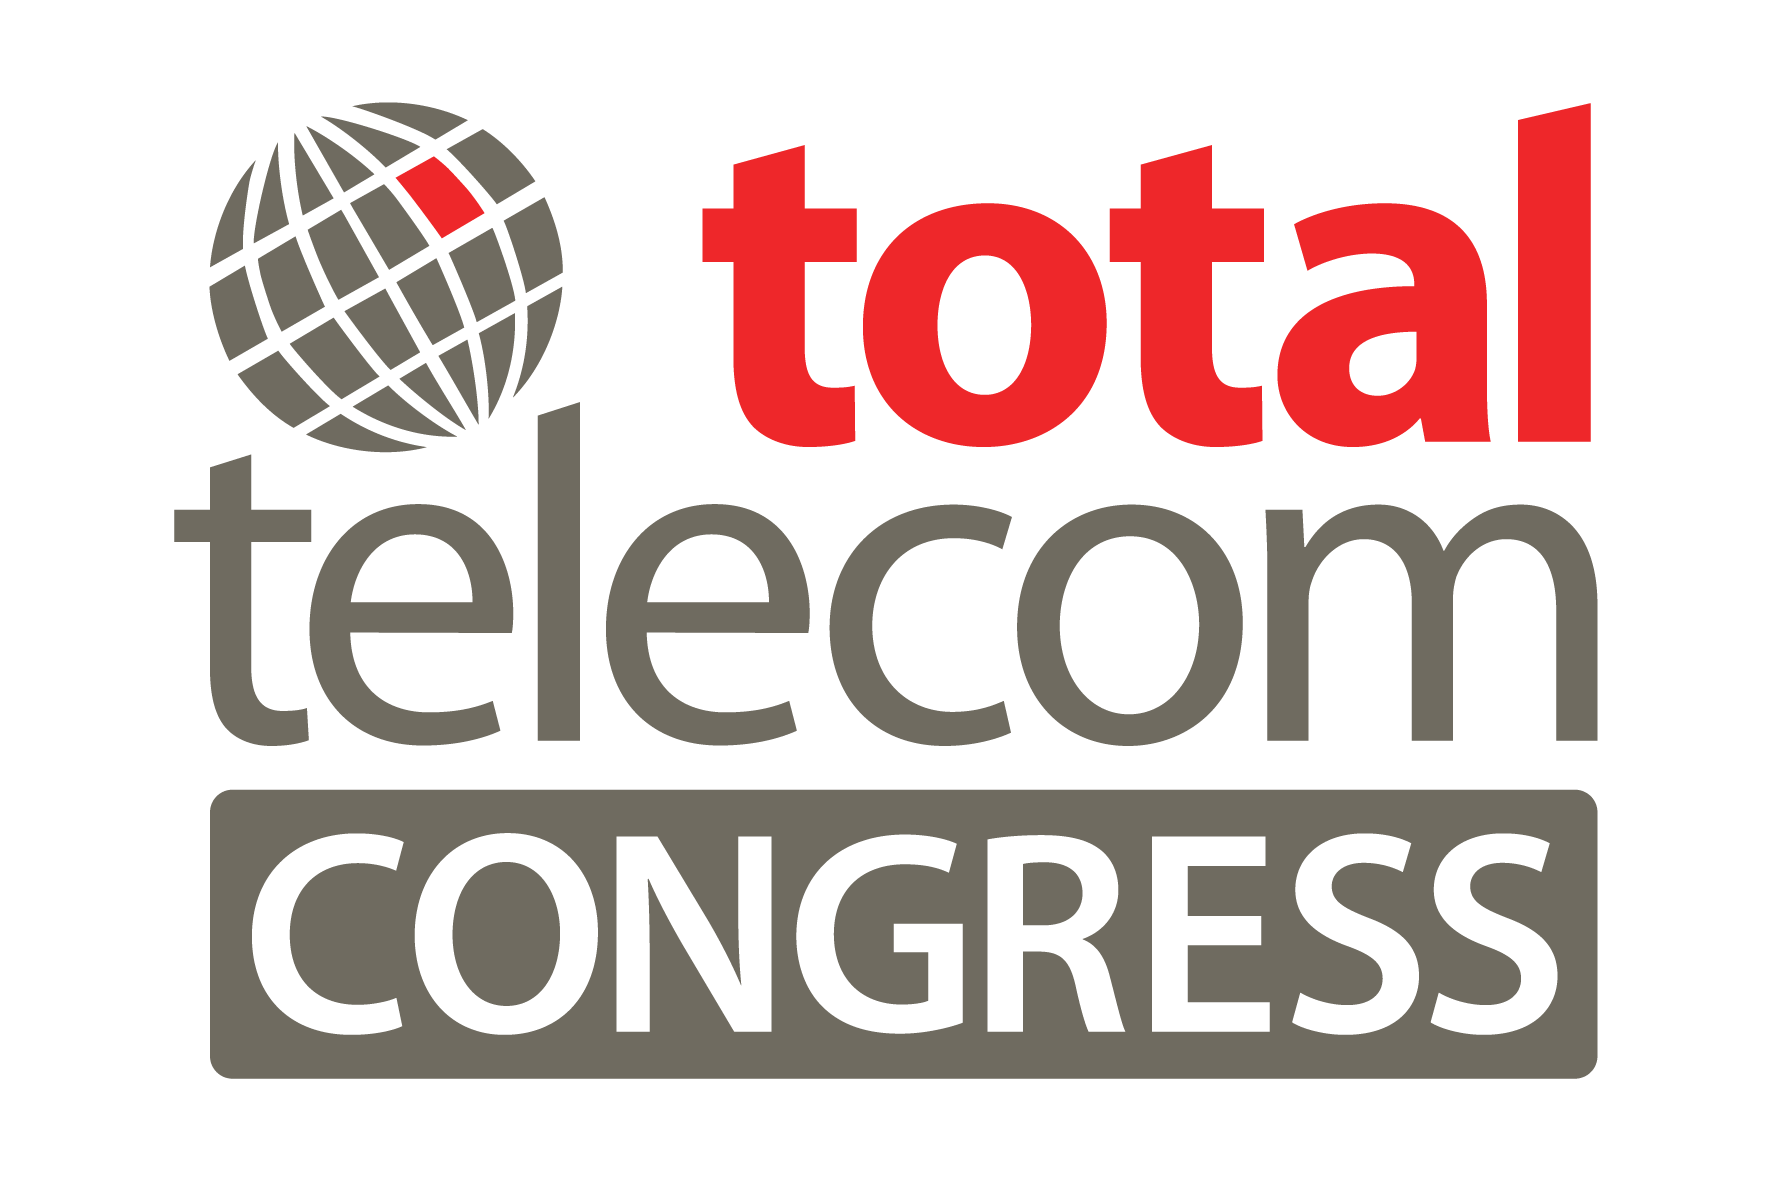 Total Telecom Congress logo